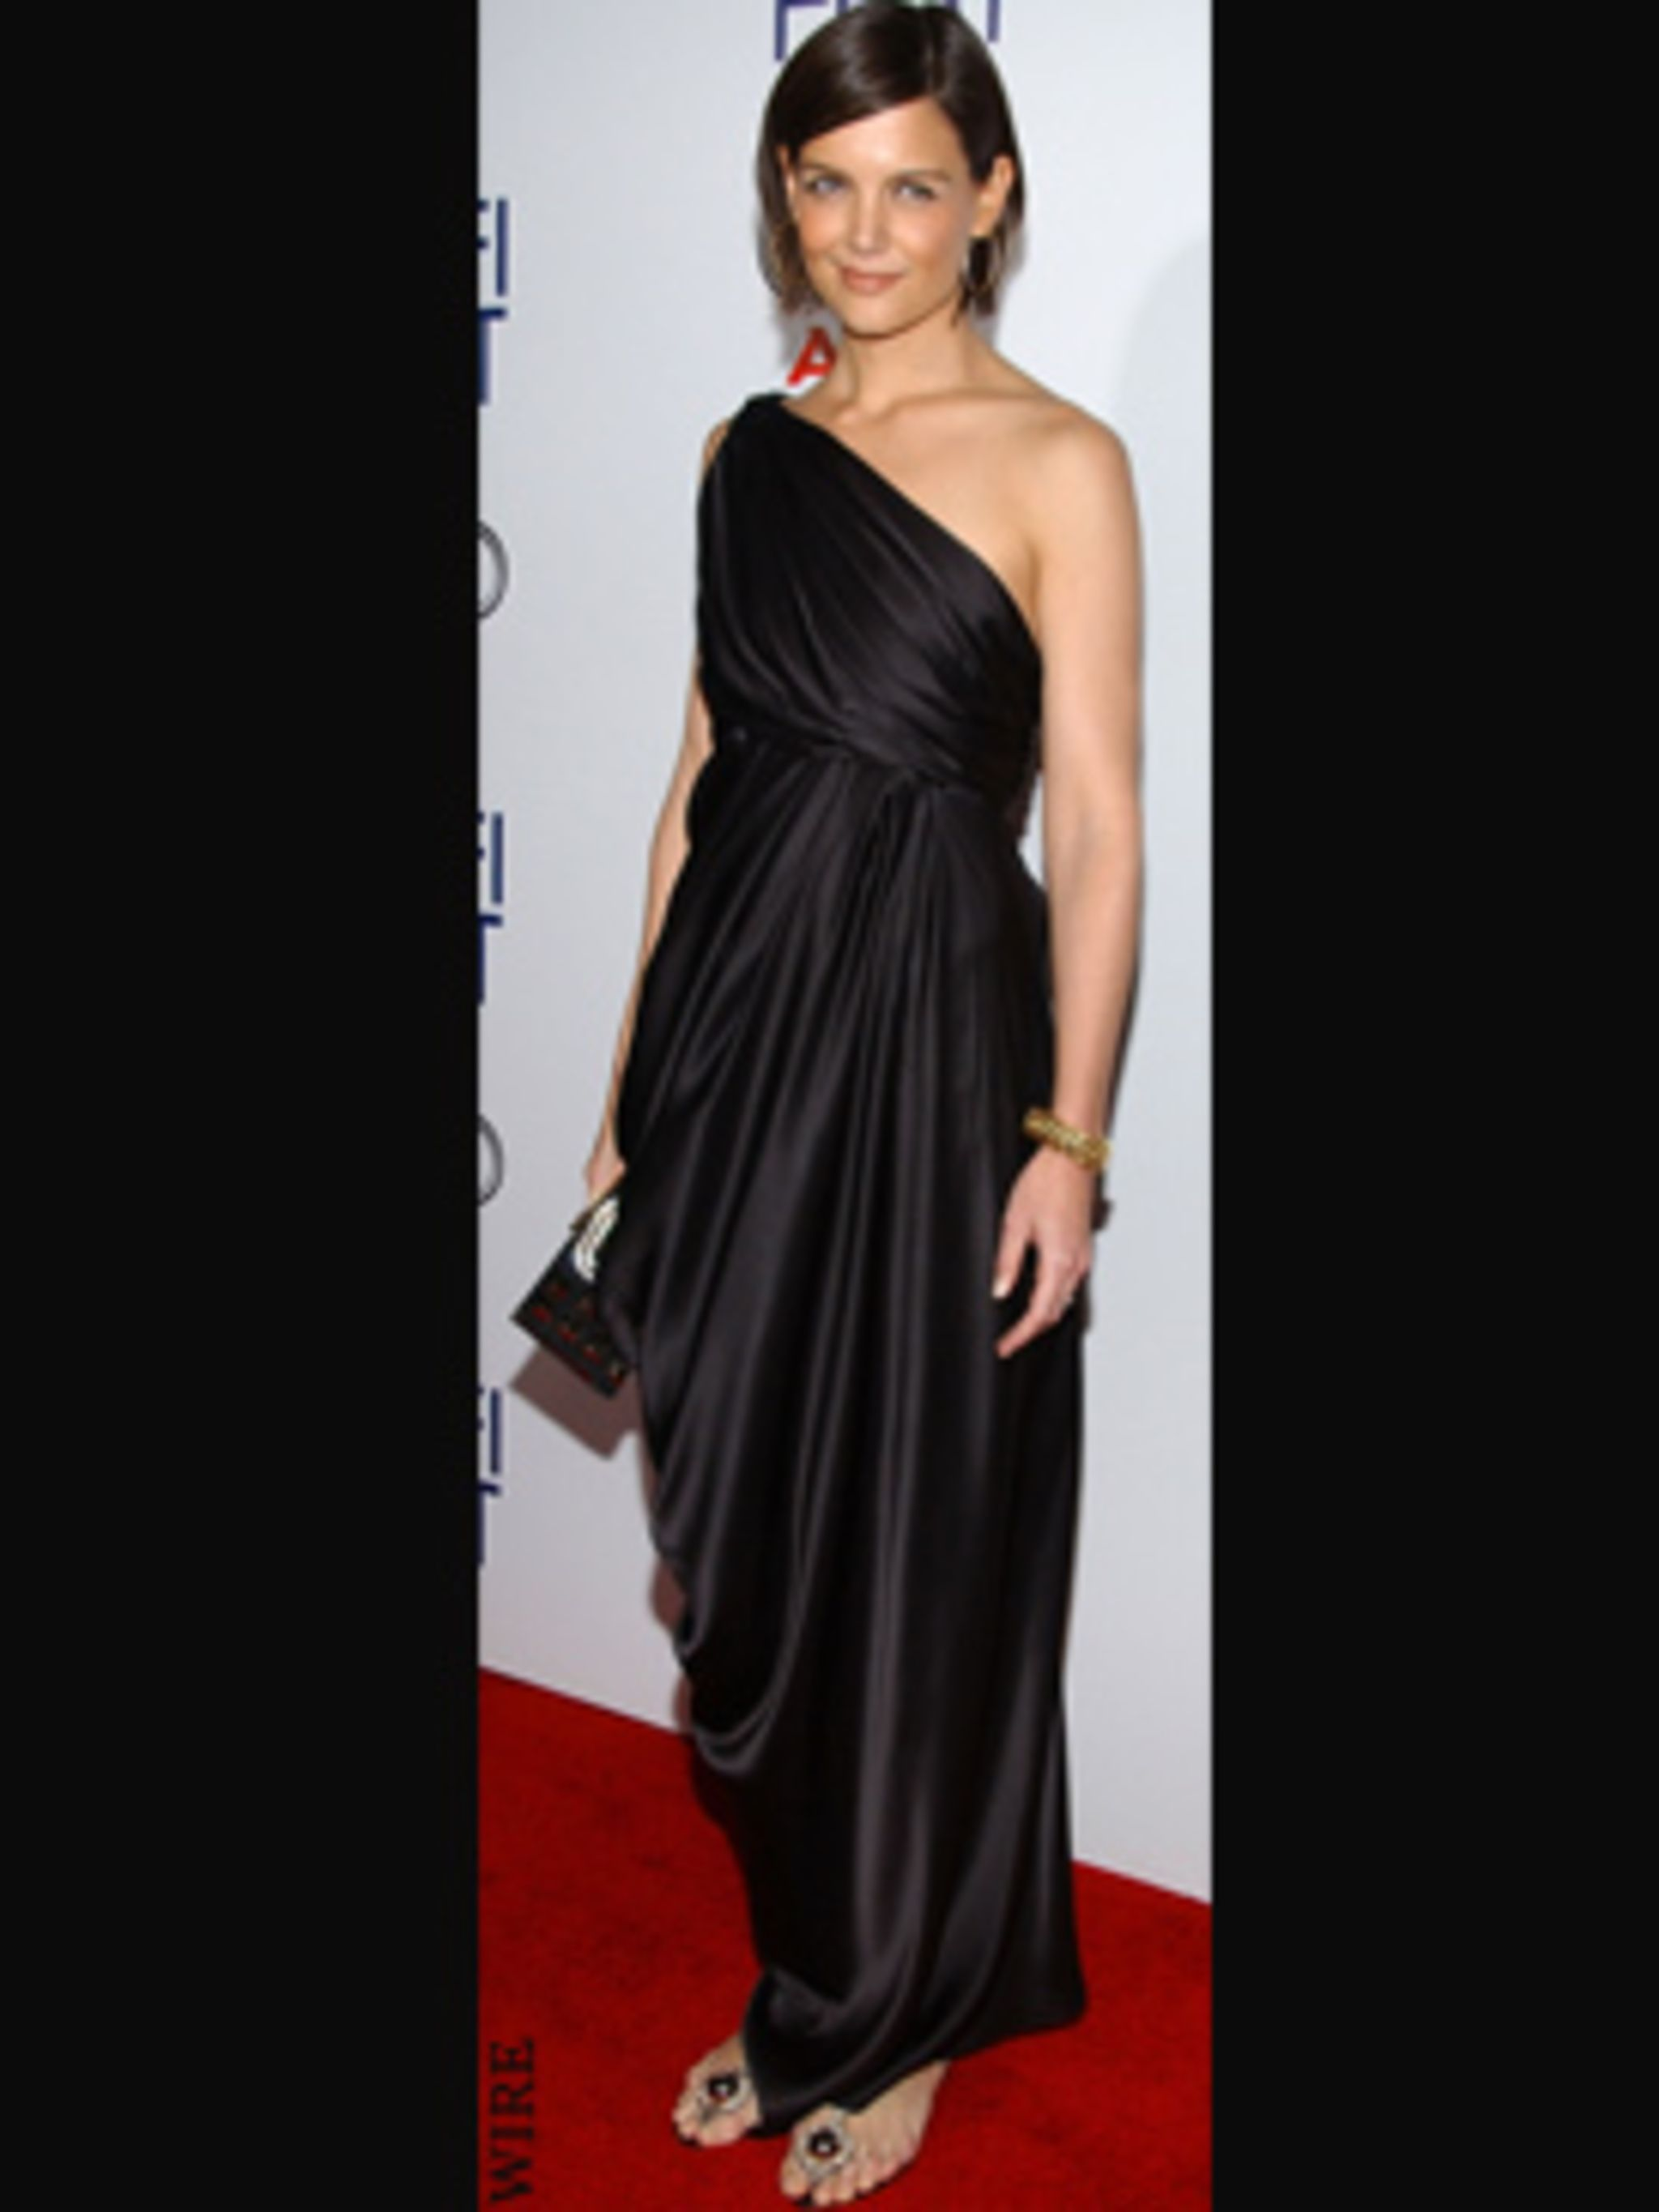 Communication on this topic: Katie Holmes Mixes Athletic and Evening Wear, katie-holmes-mixes-athletic-and-evening-wear/